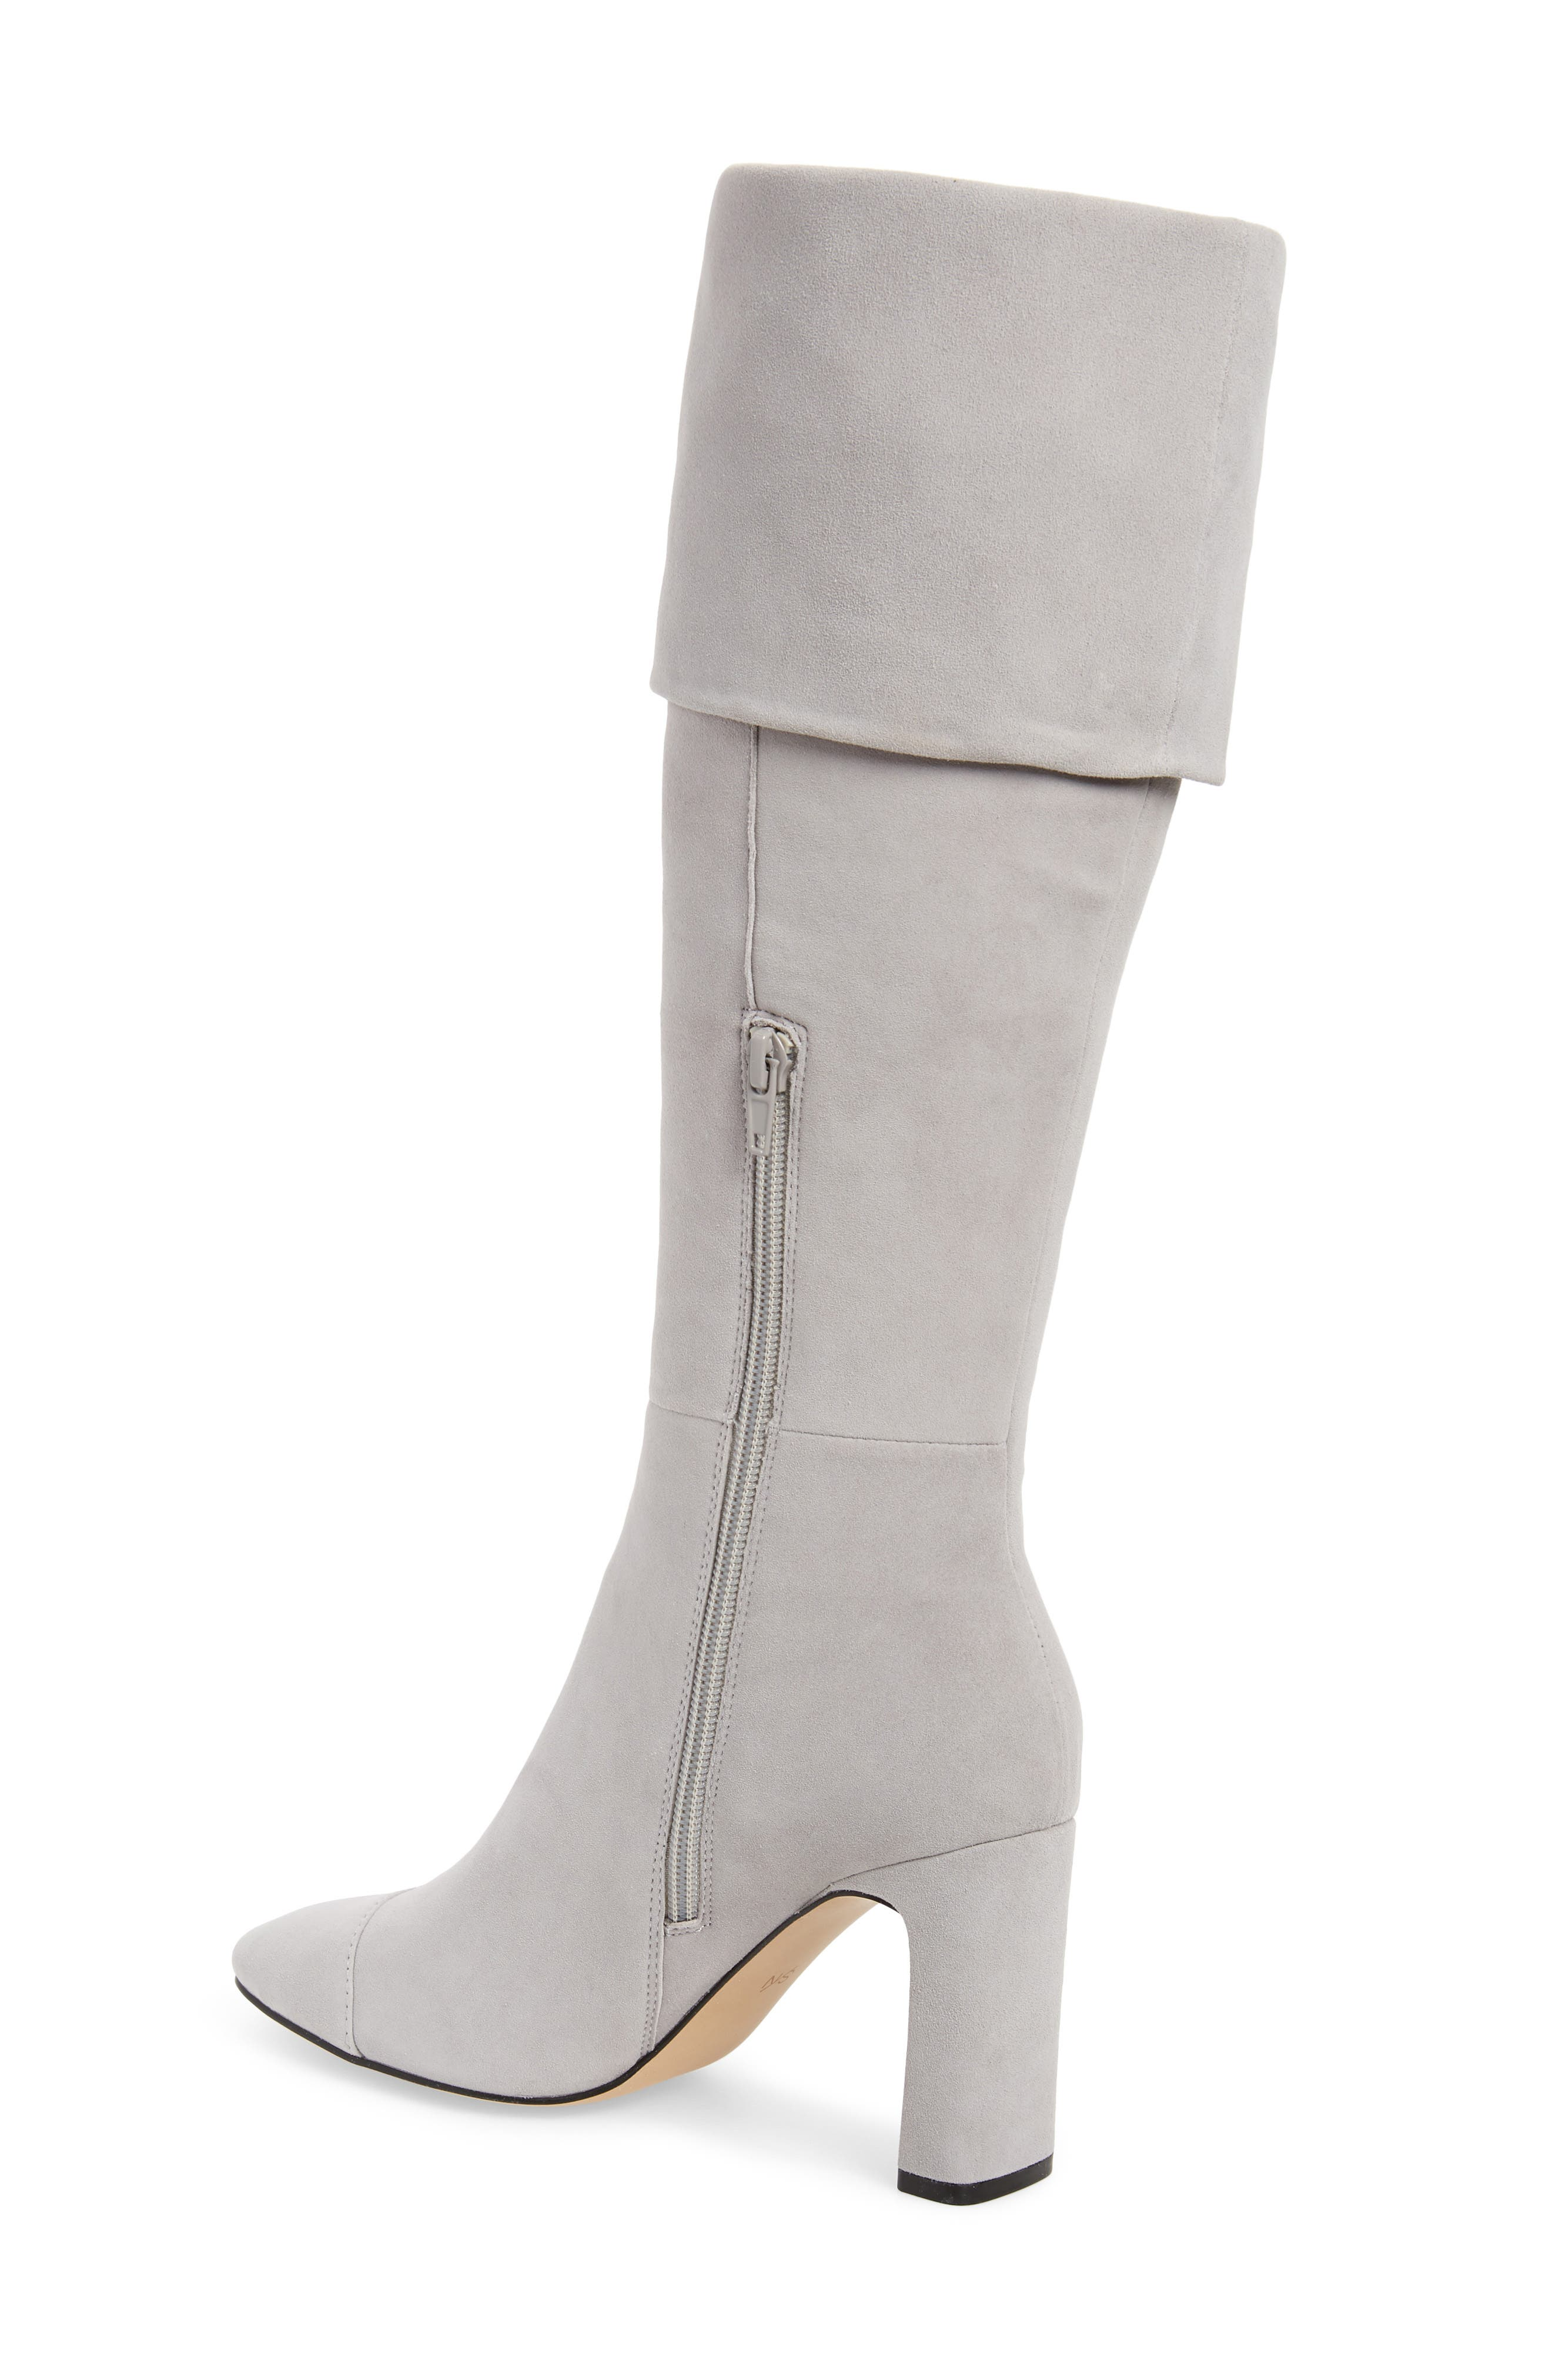 Mia Knee High Boot,                             Alternate thumbnail 3, color,                             LIGHT GREY SUEDE